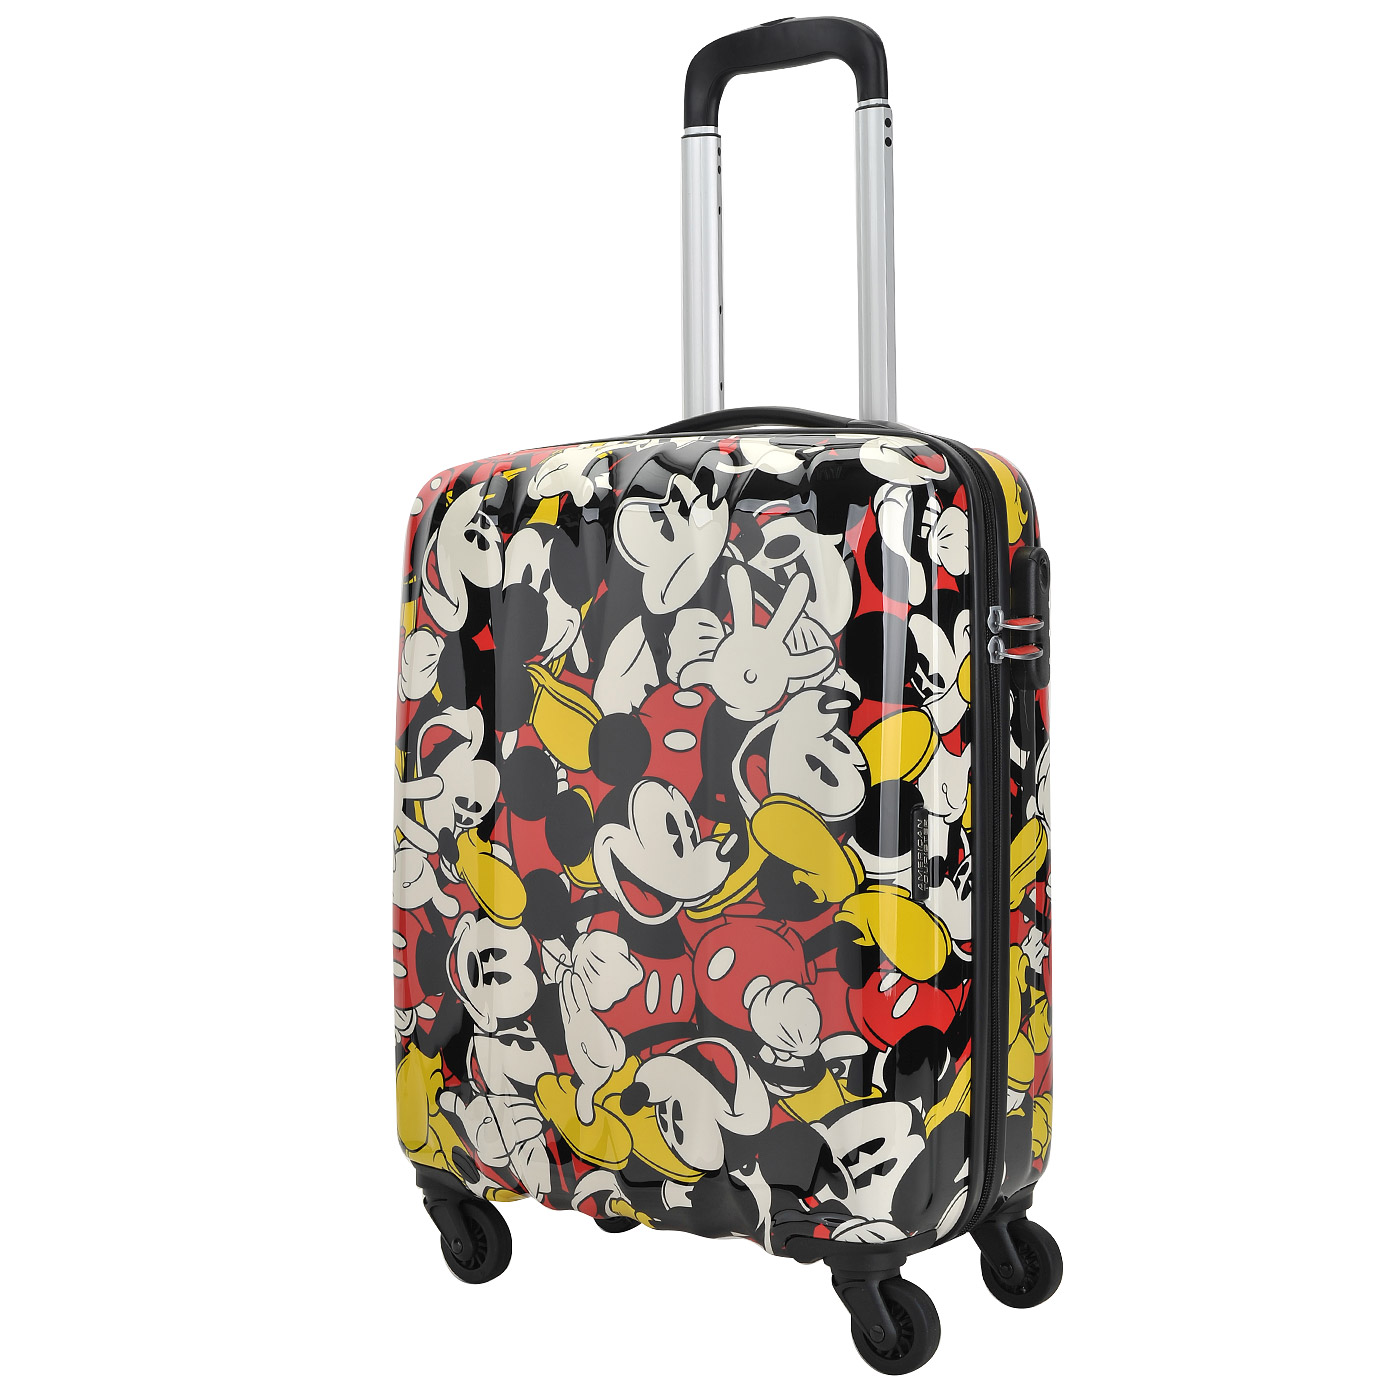 a4e43a9bb80c Чемодан на колесах American Tourister Disney Legends Чемодан на колесах  American Tourister Disney Legends ...